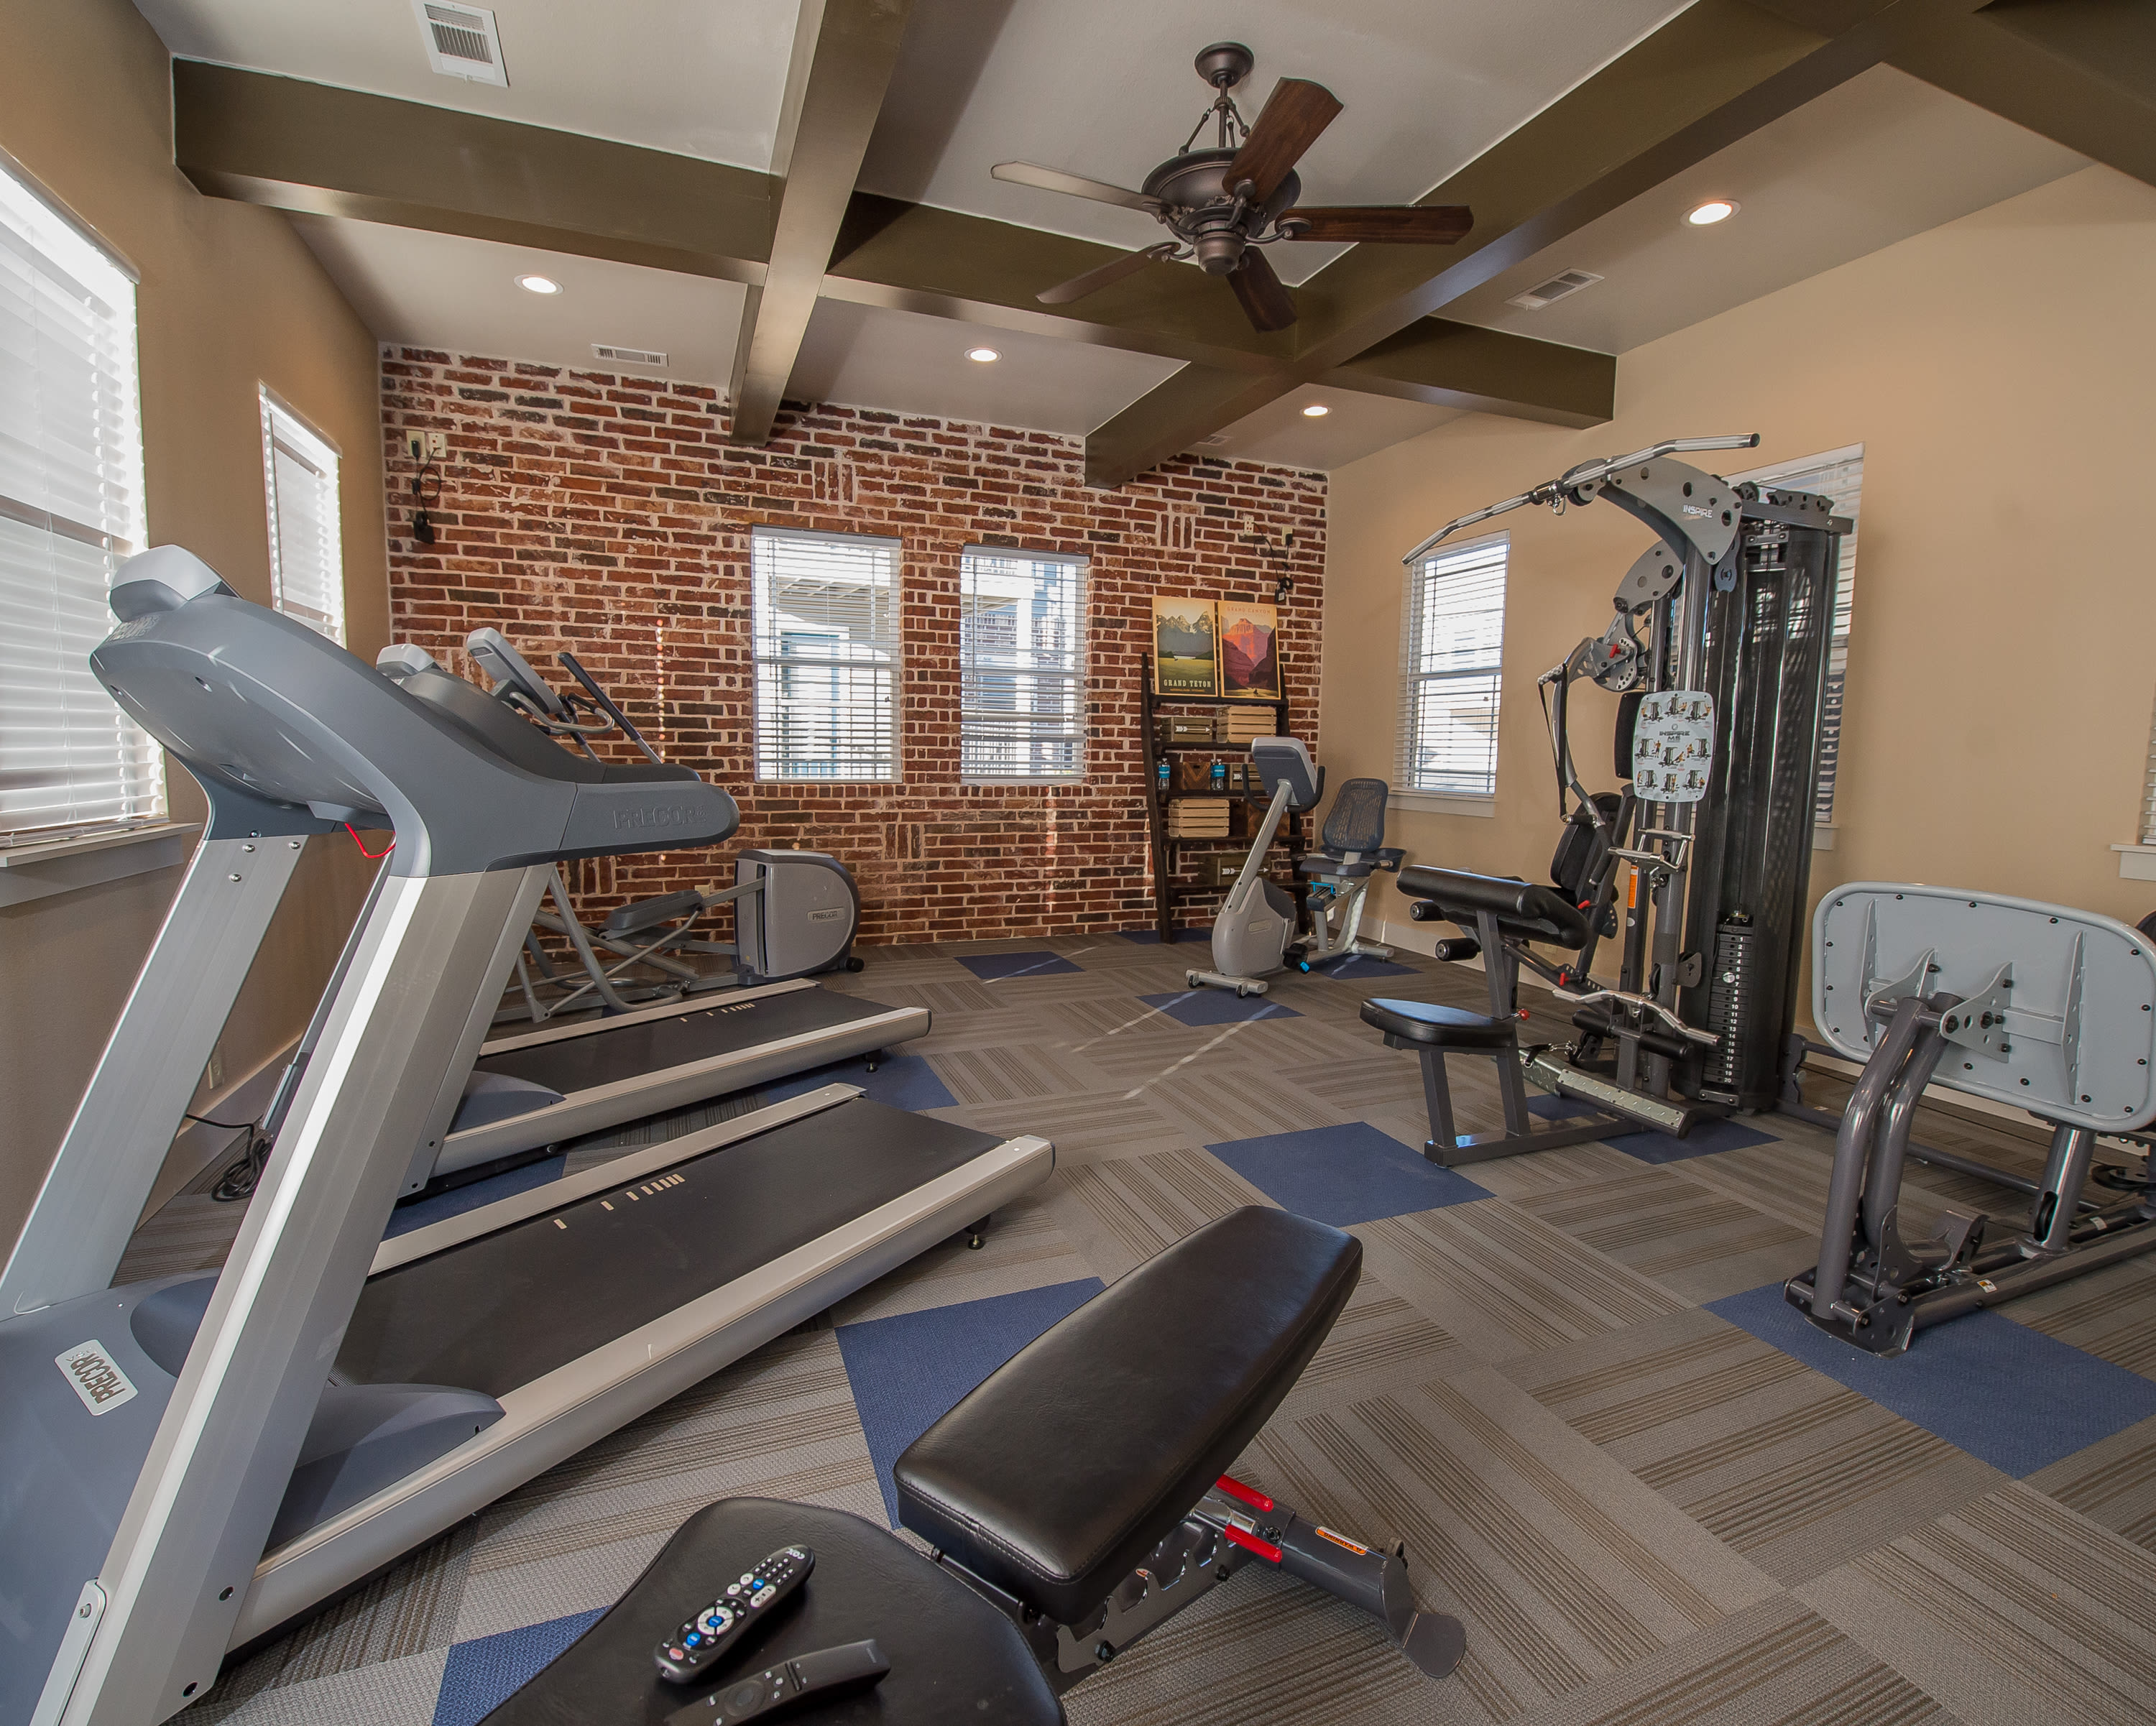 Private fitness center at Watercress Apartments in Maize, Kansas